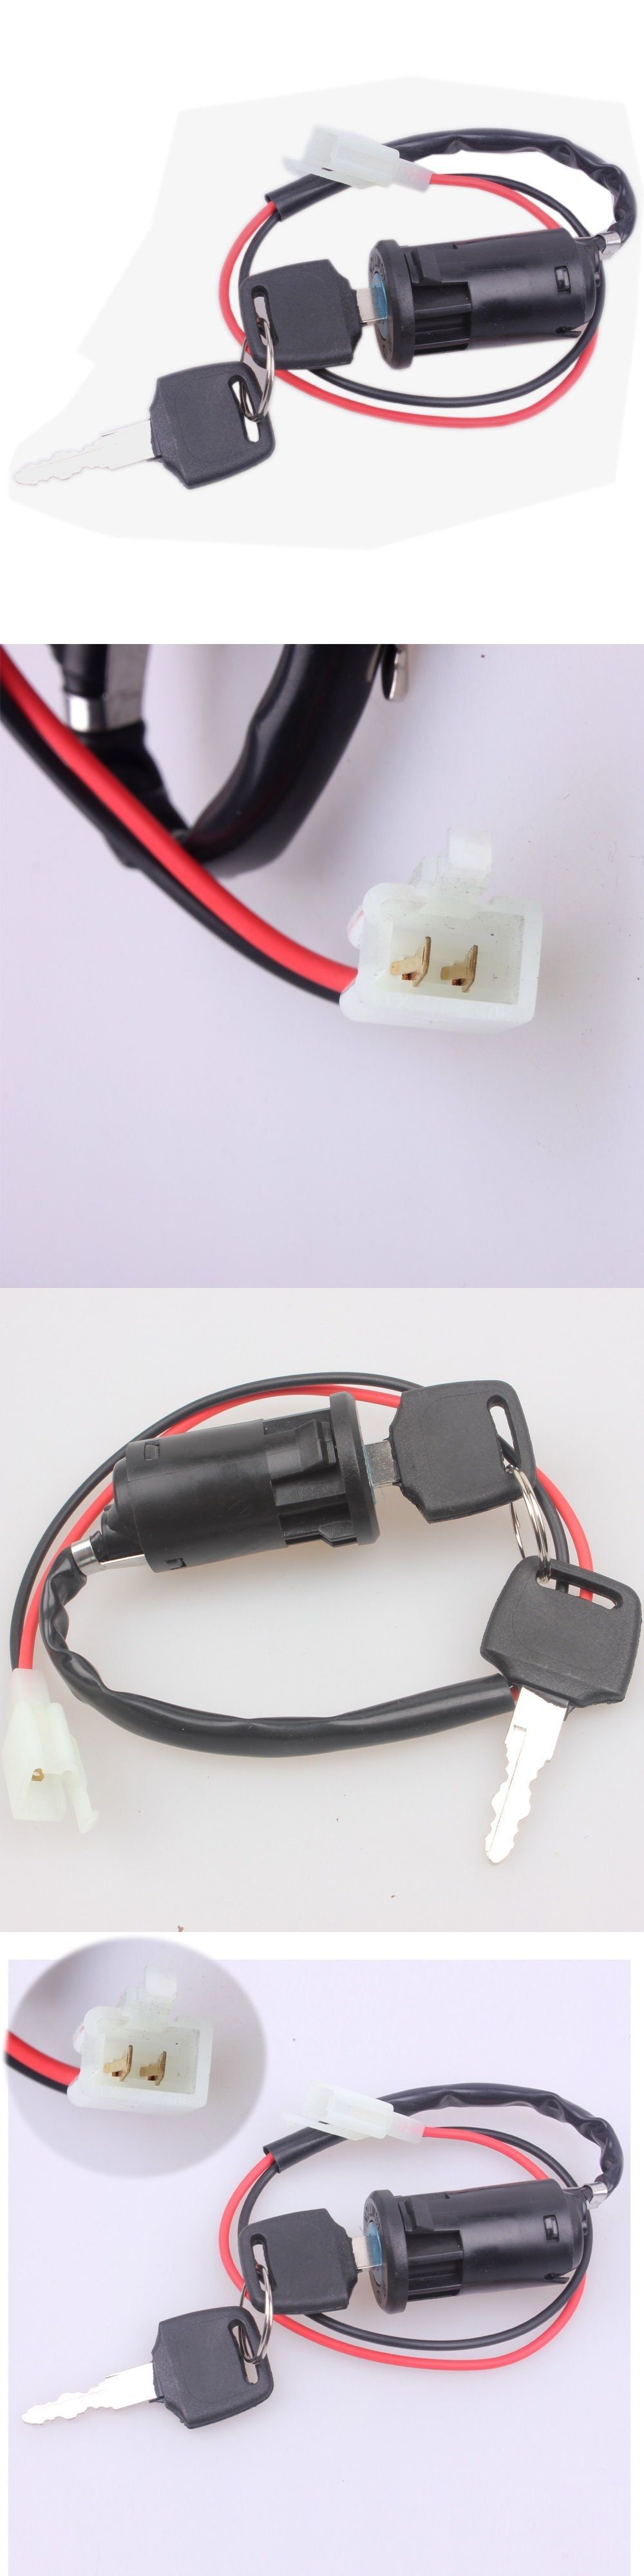 MYMotor Ignition Key Switch Lock 2 Wire Electrical Scooter 2 ...